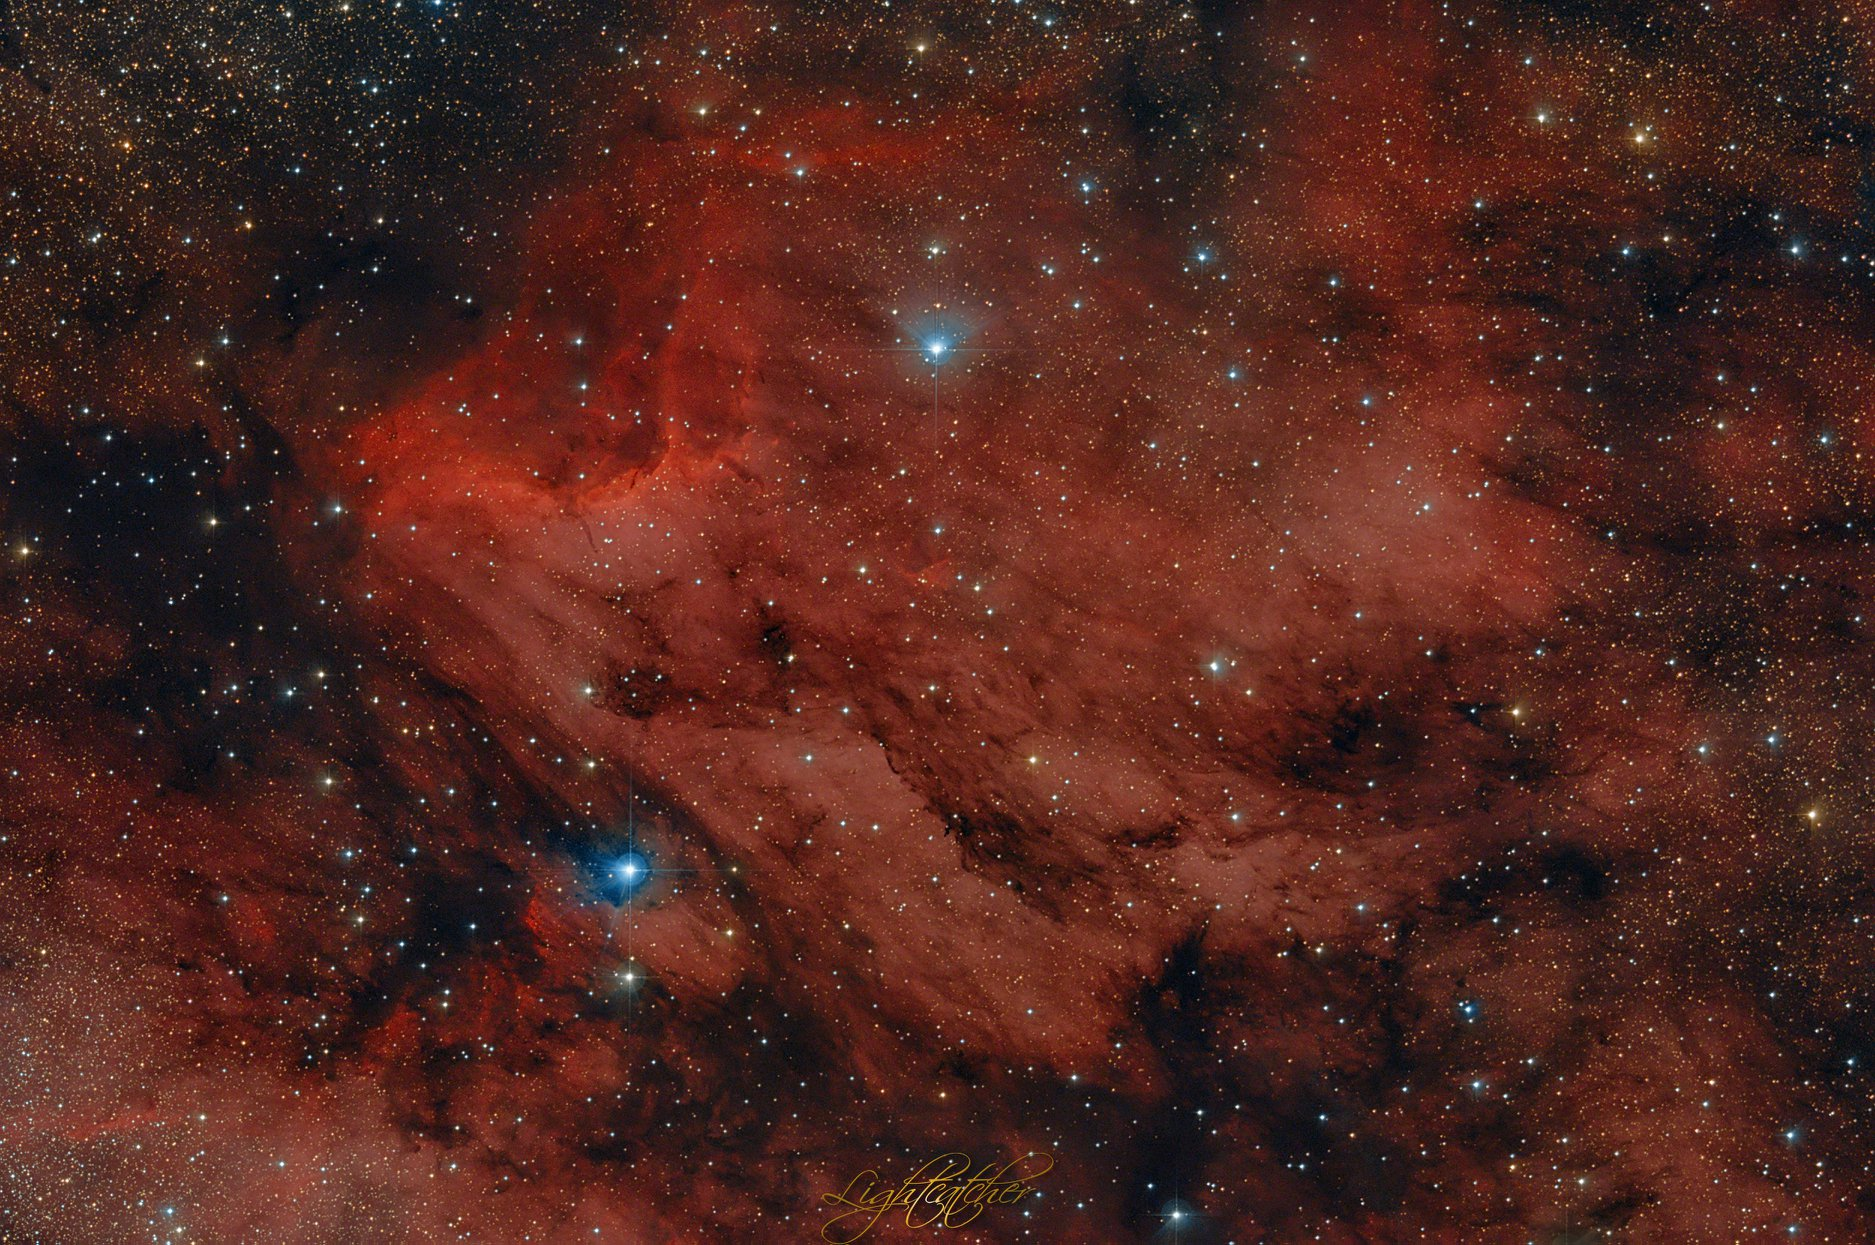 IC 5070 and IC 5067